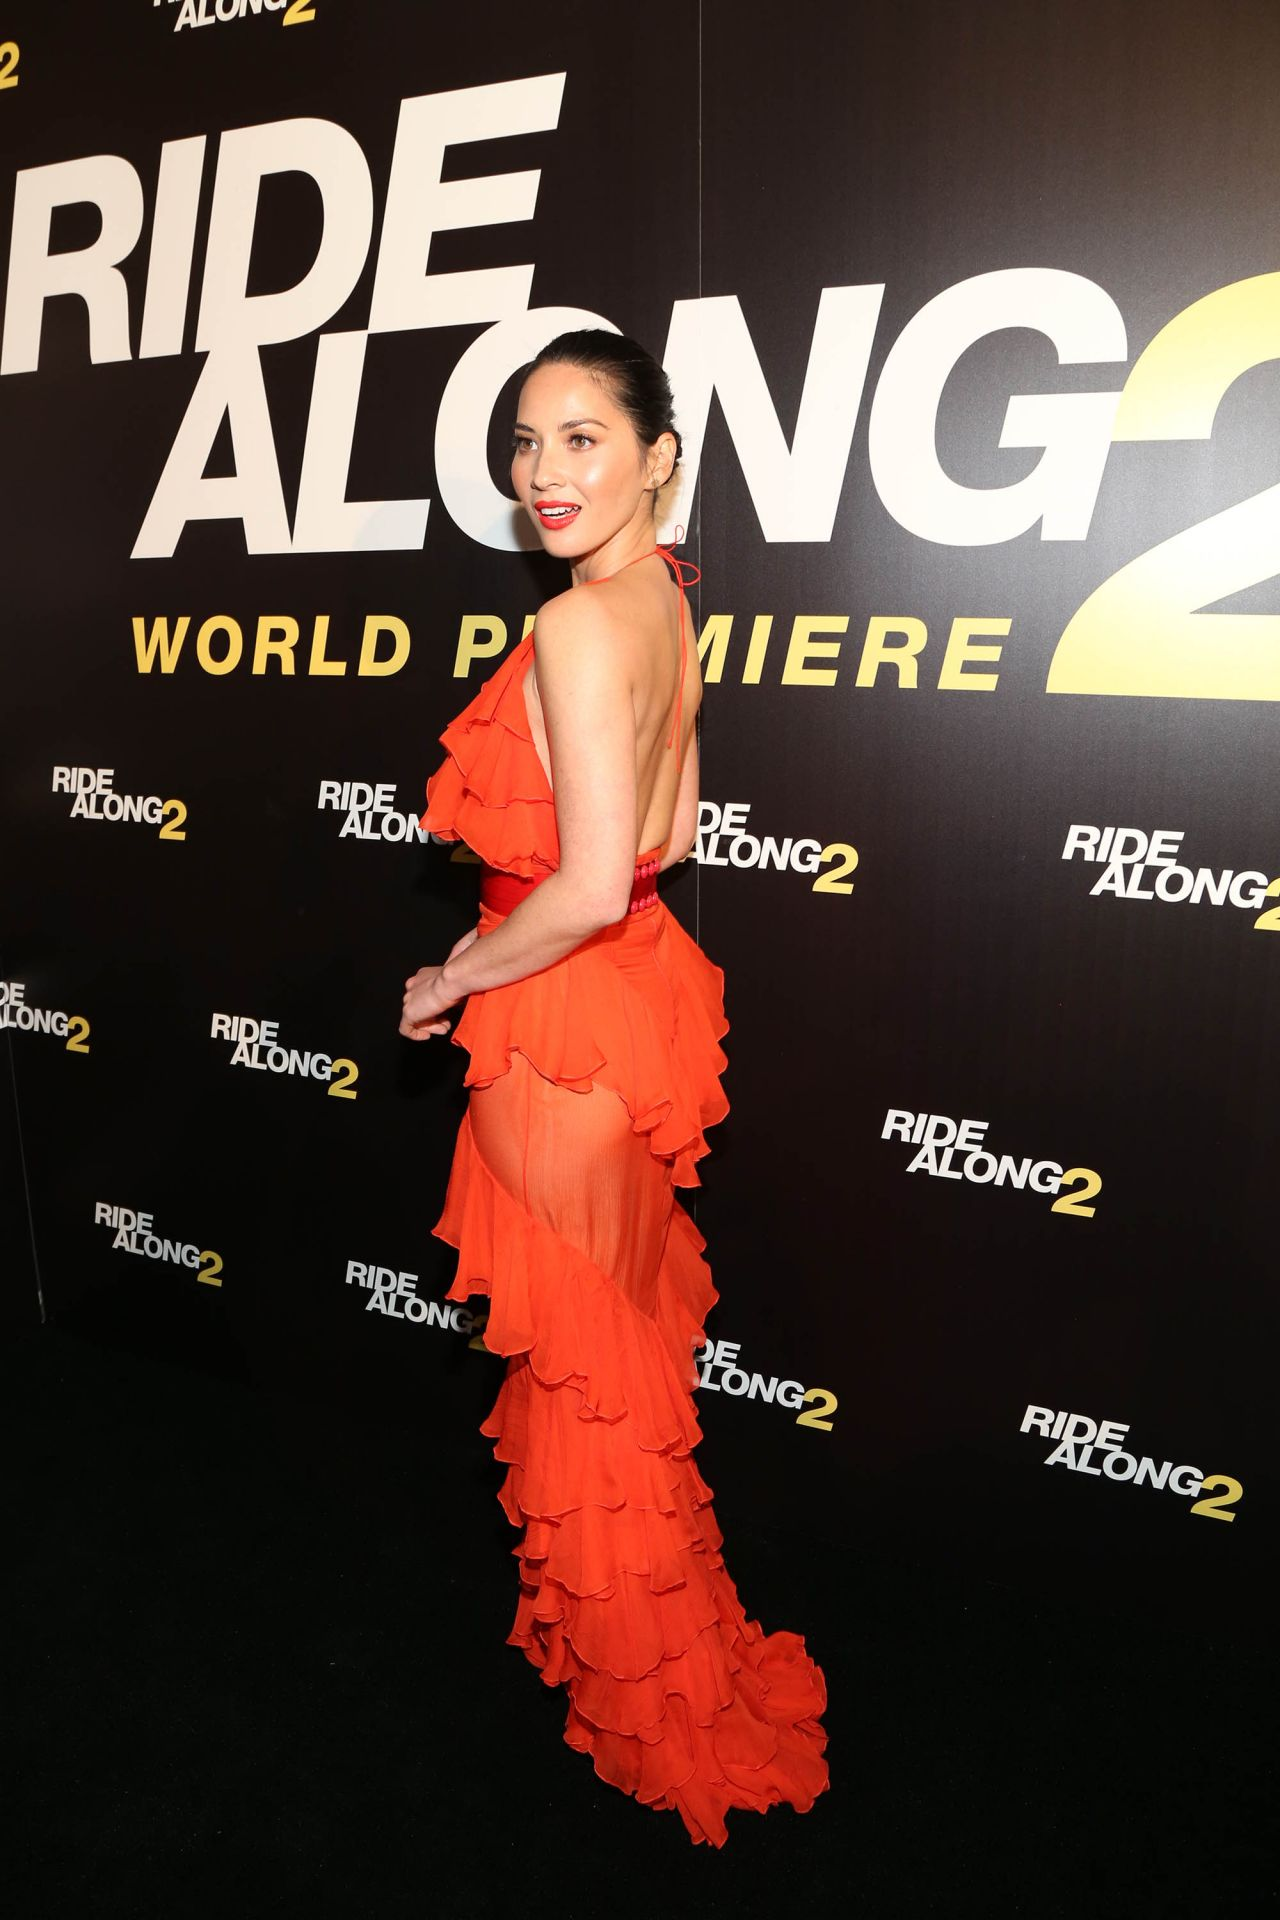 olivia-munn-ride-along-2-premiere-in-miami-3